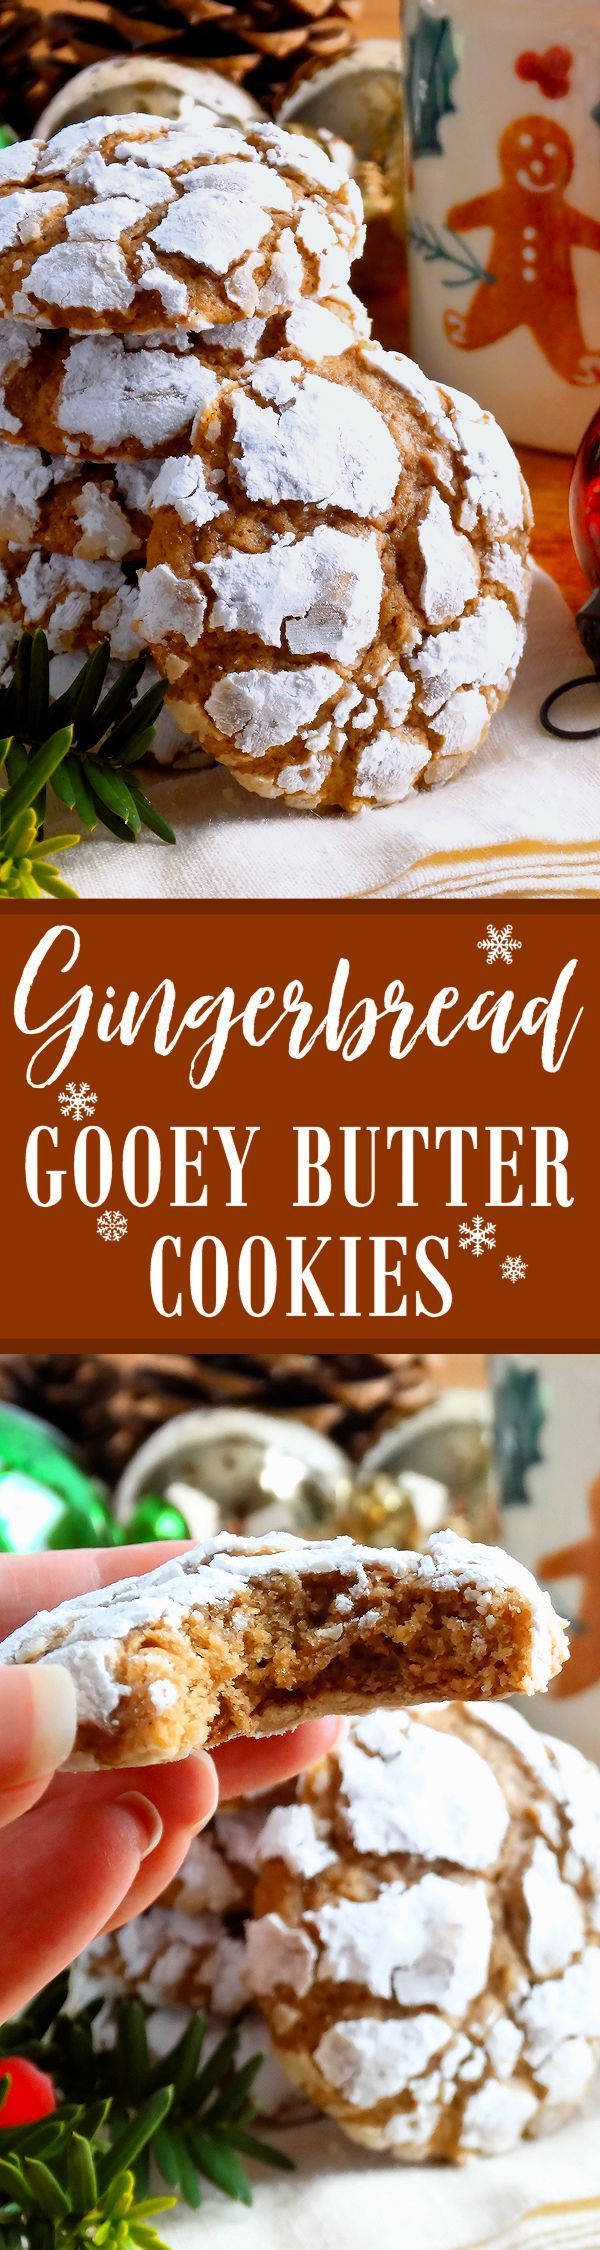 Amp occasions gt christmas alert occasions gt christmas decorations - Gingerbread Gooey Butter Cookies Pure Christmas Deliciousness Melt In Your Mouth